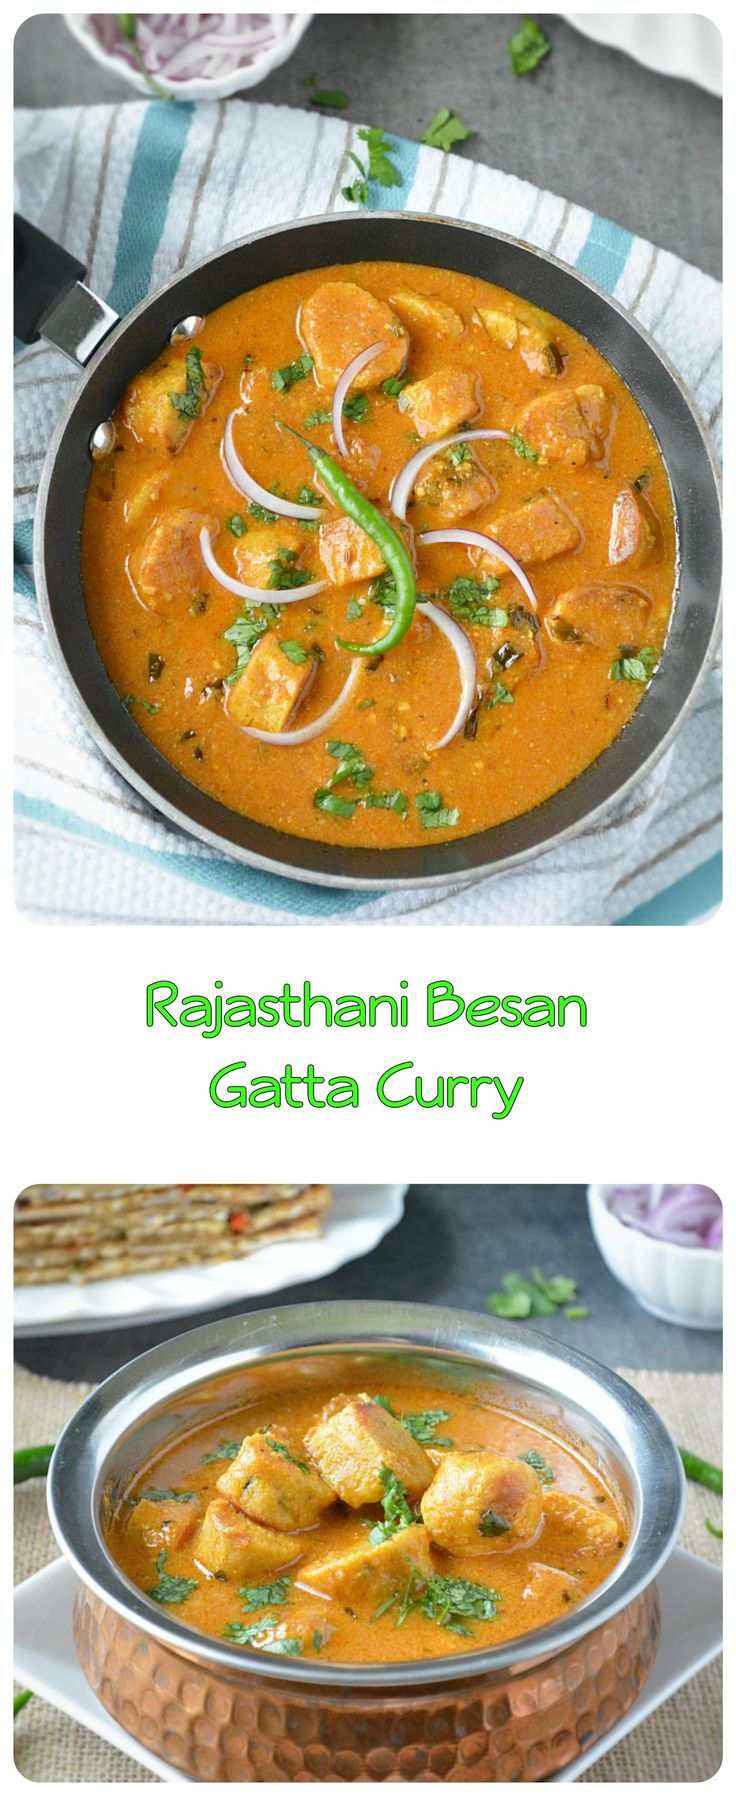 ‪#‎Meatless‬ ‪#‎Monday‬ - #noonionnogarlic #Gatte ki #sabzi also referred to as #Besangatta #curry. A #specialty of #Rajasthani #Cuisine and no Rajasthani thali is complete without this dish. ‪#indiancooking #indiancuisine #indianfood #recipes ‪#cooking #ilovecooking #dinner #maincourse